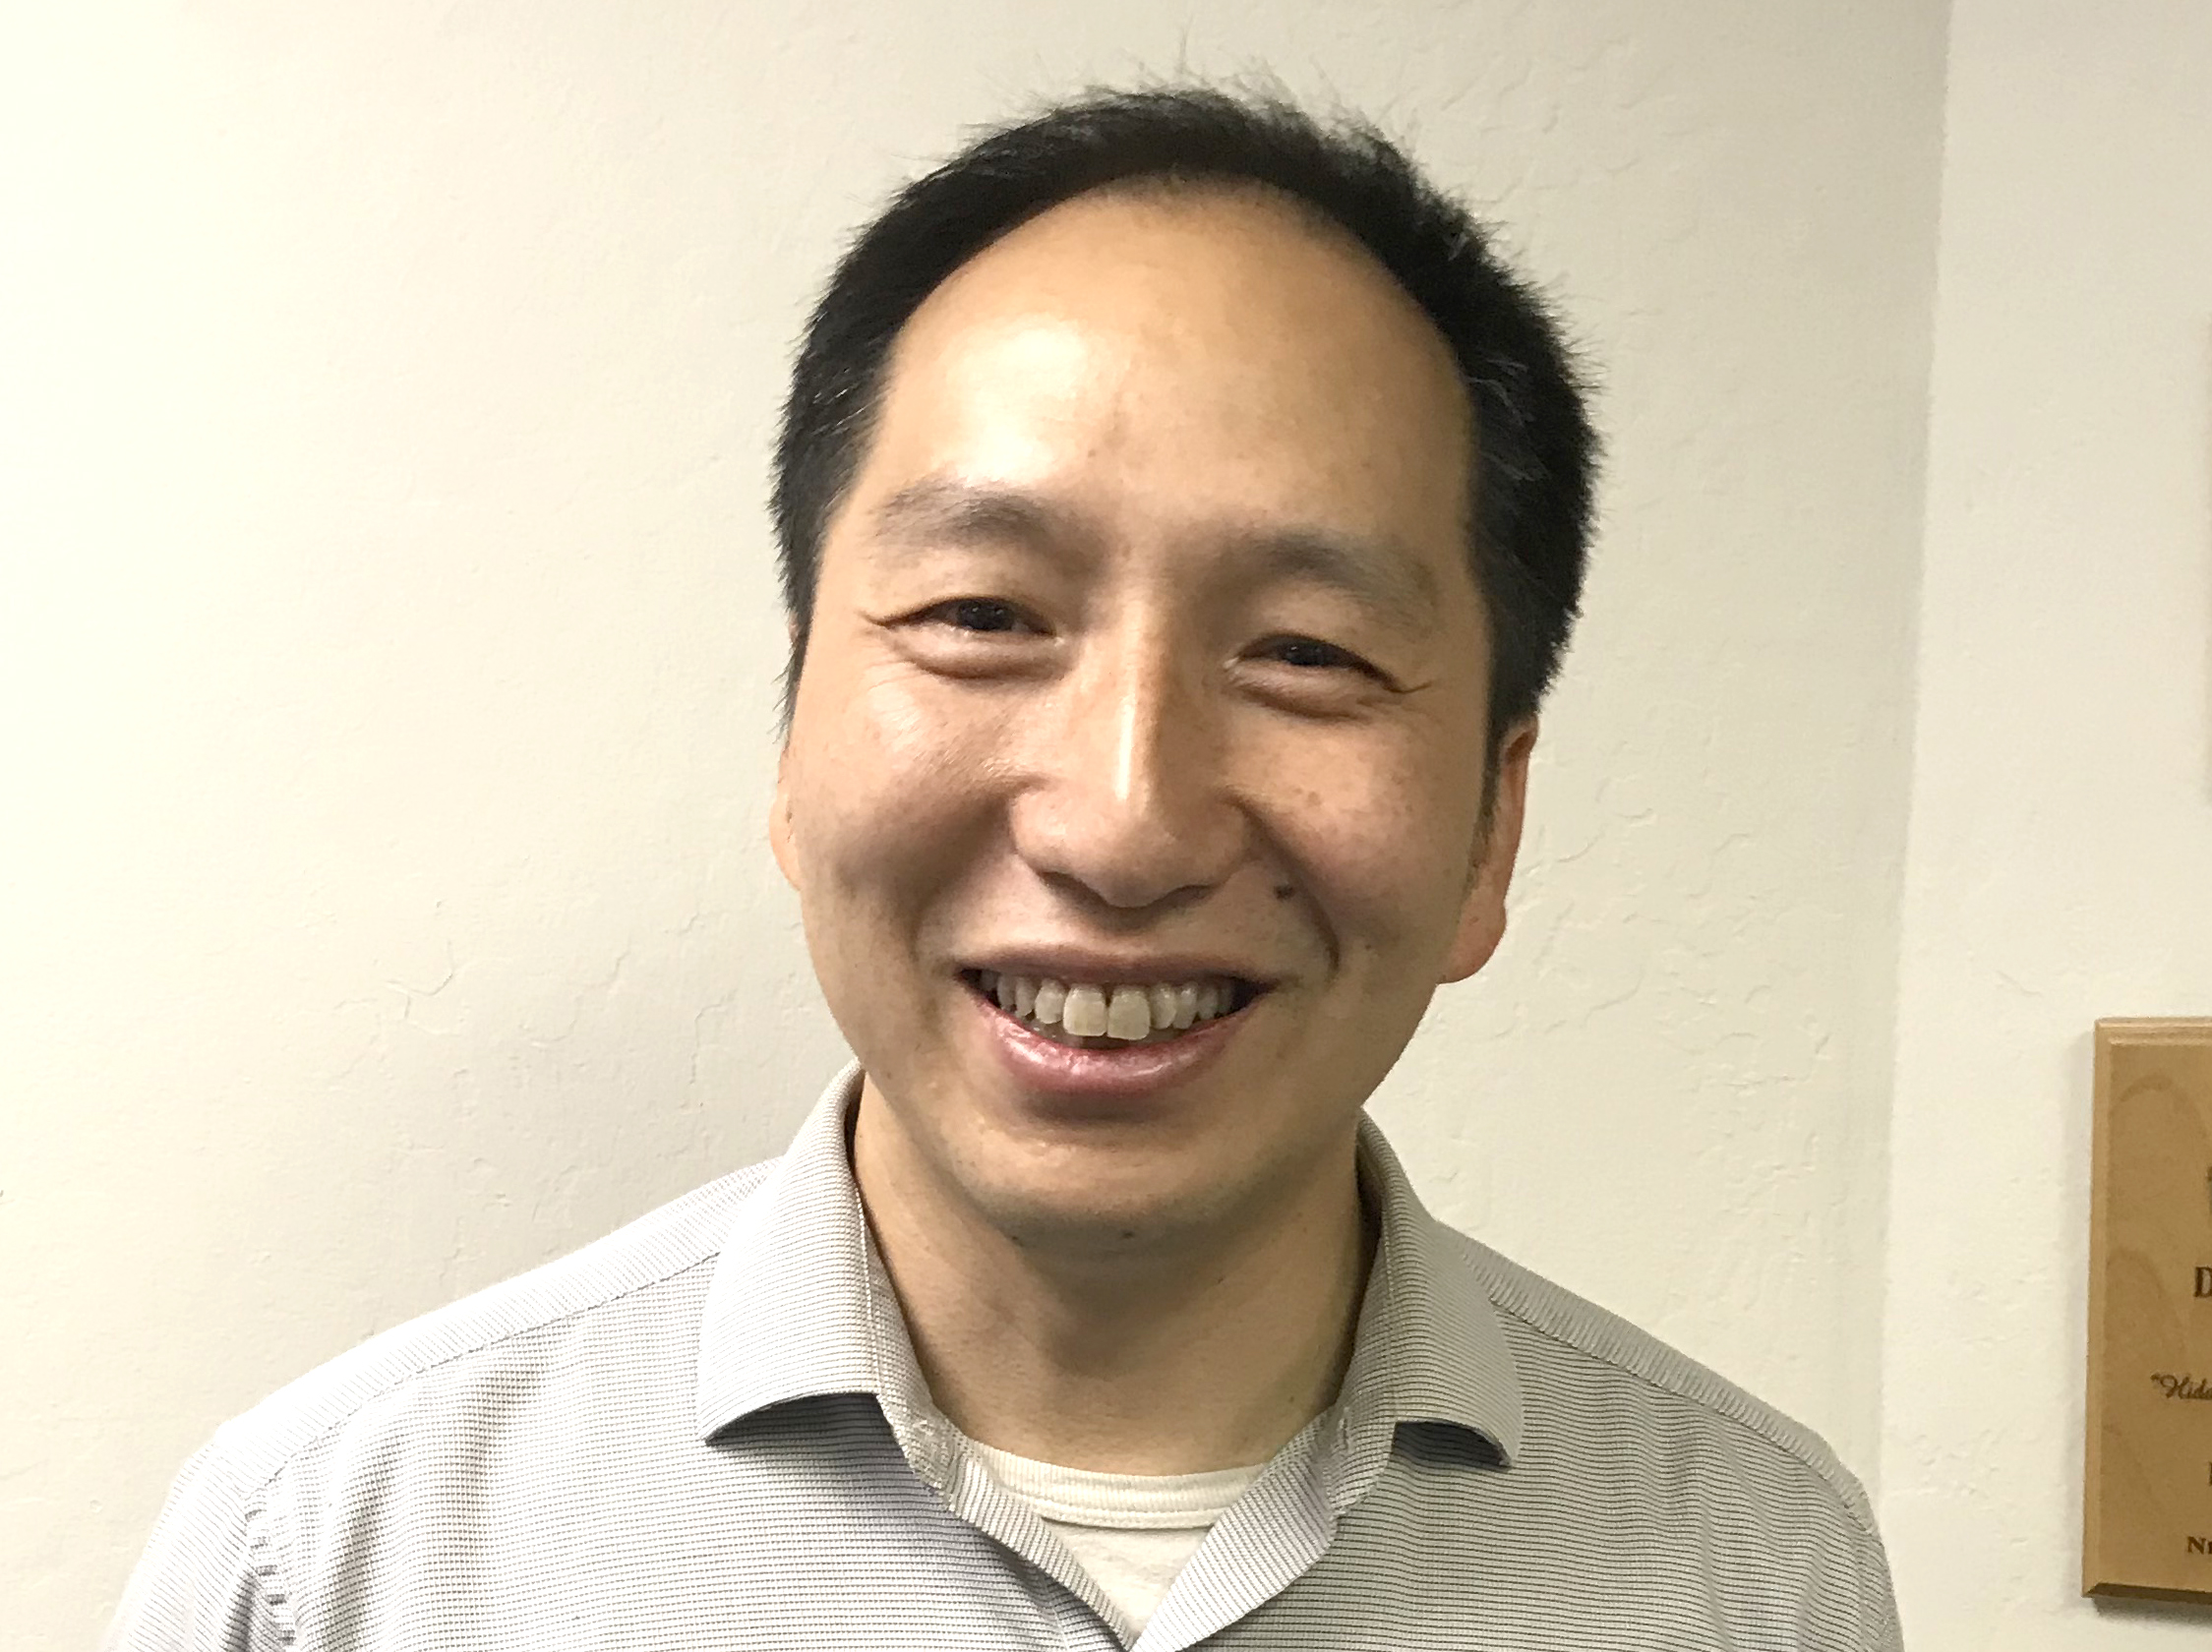 George Yang, candidate for Menlo Park City Council District 1